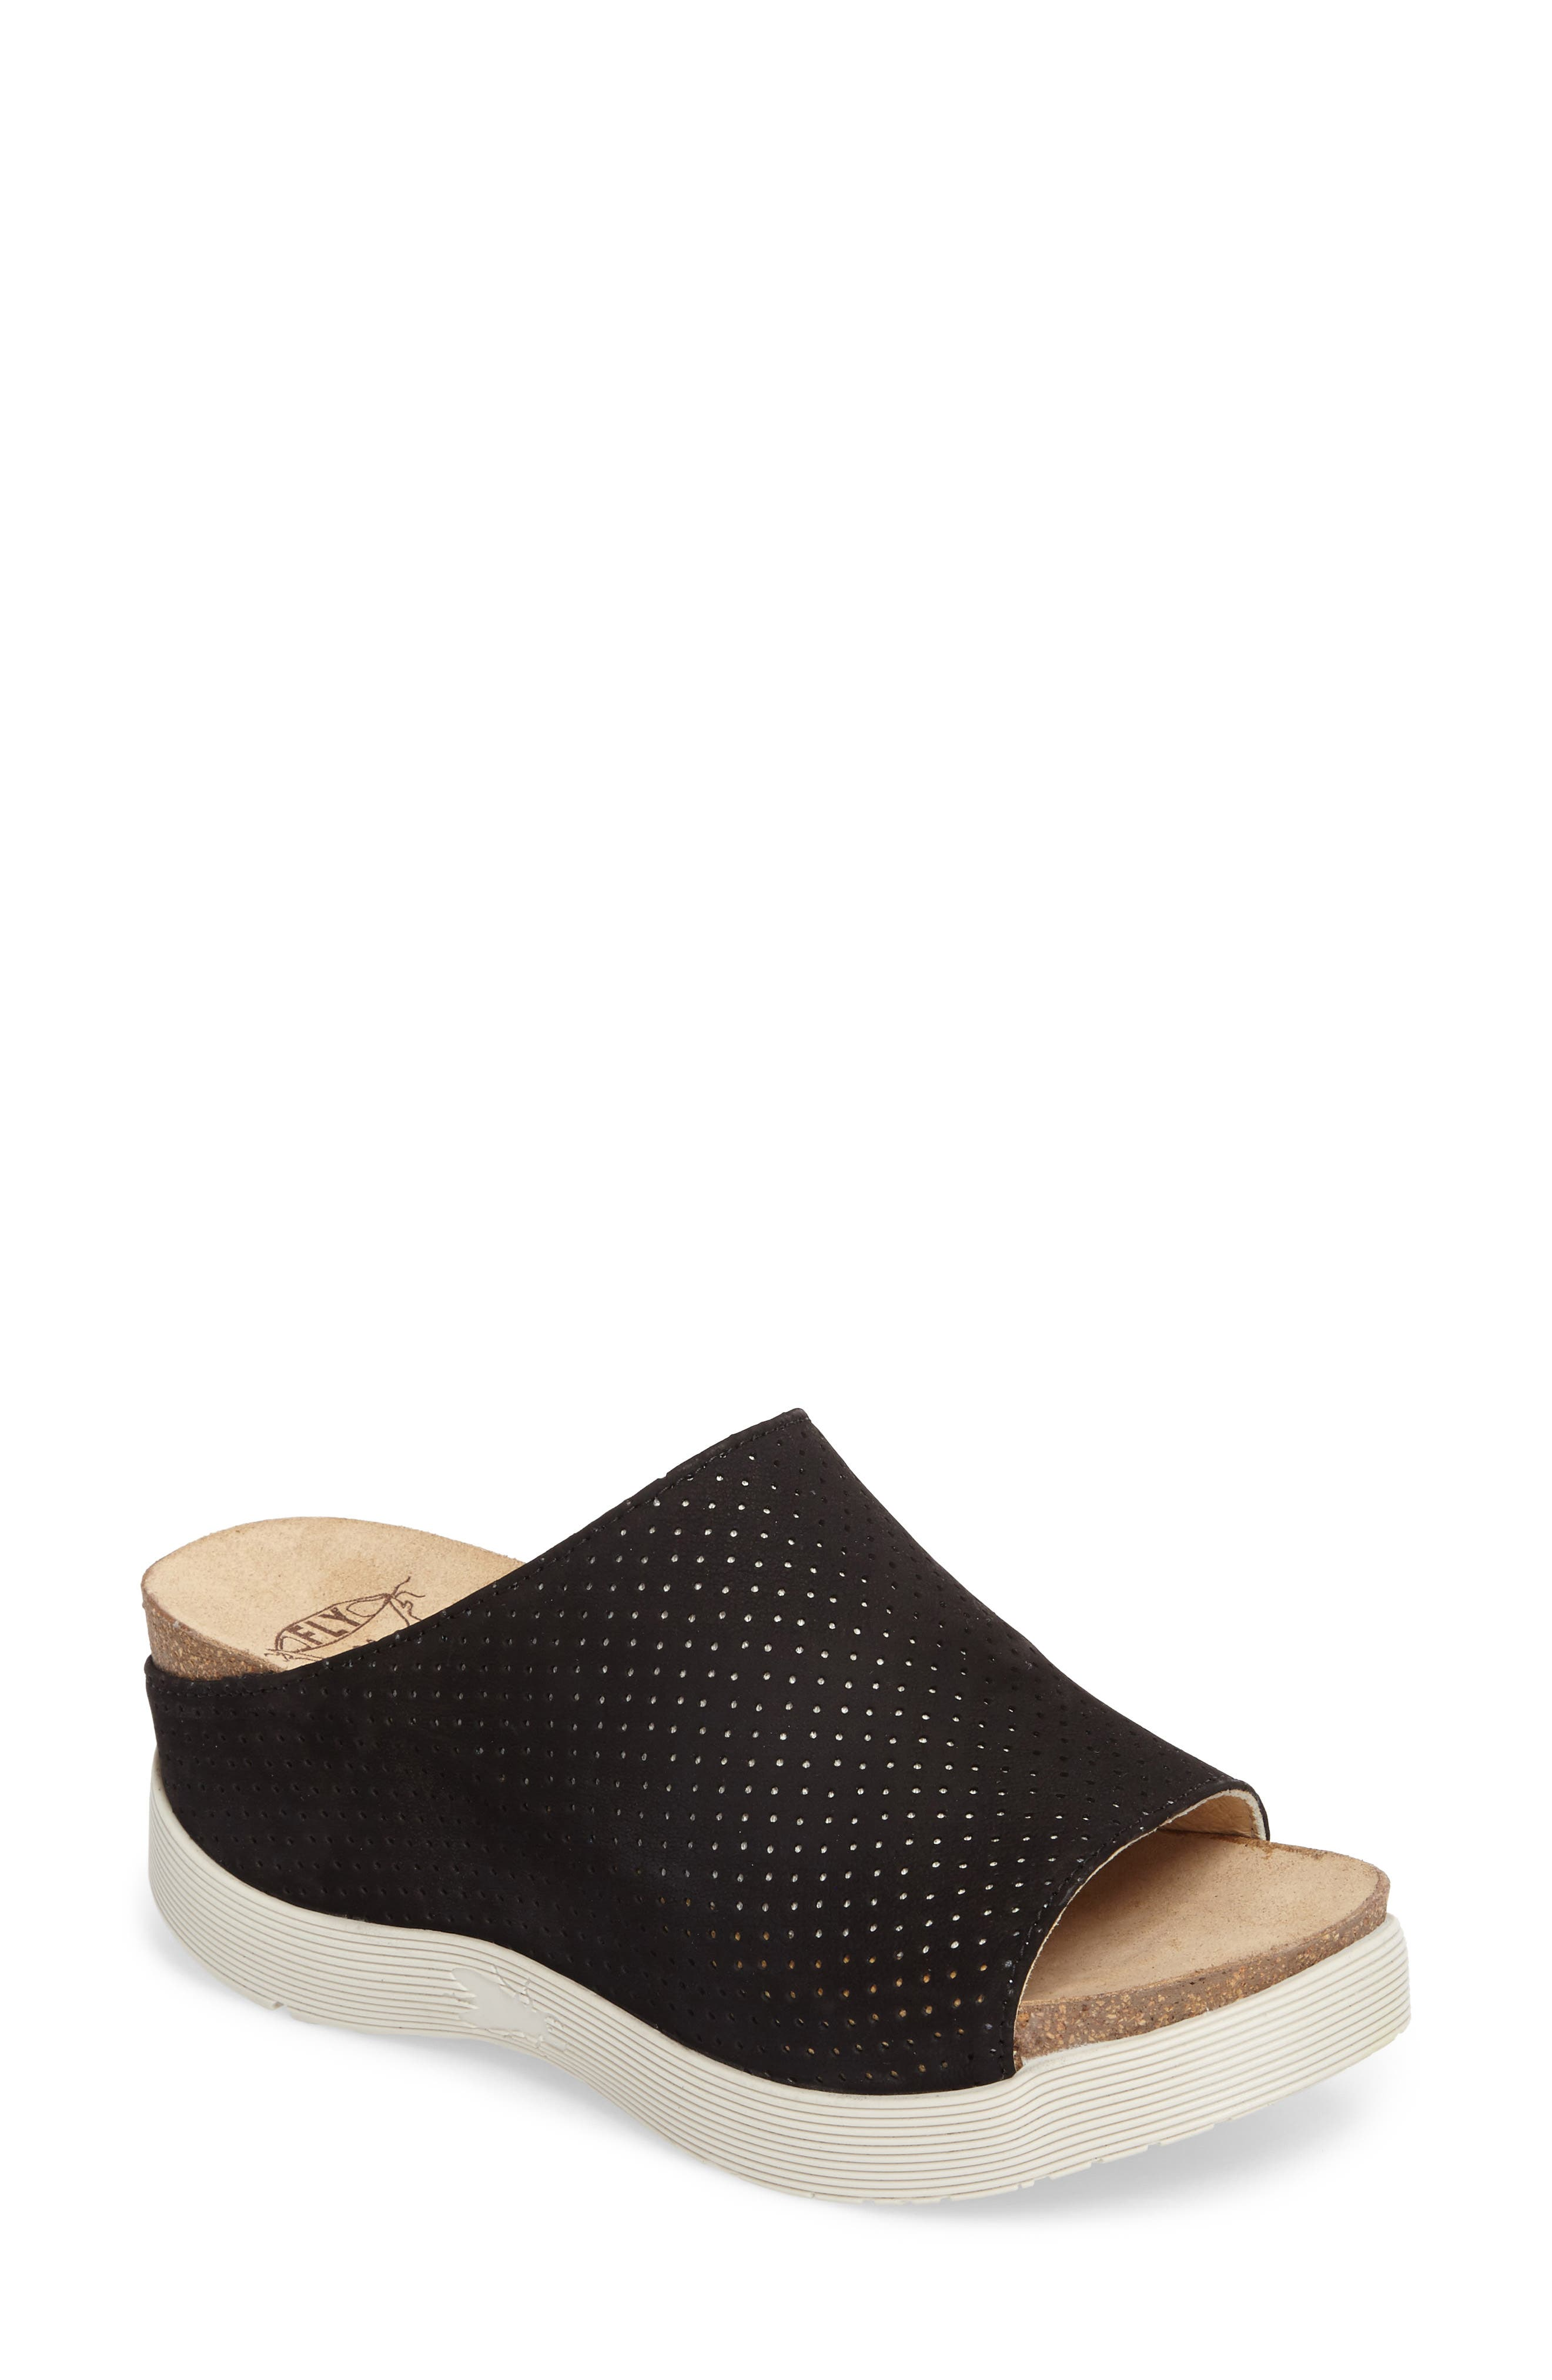 FLY LONDON Whin Platform Sandal, Main, color, BLACK CUPIDO LEATHER